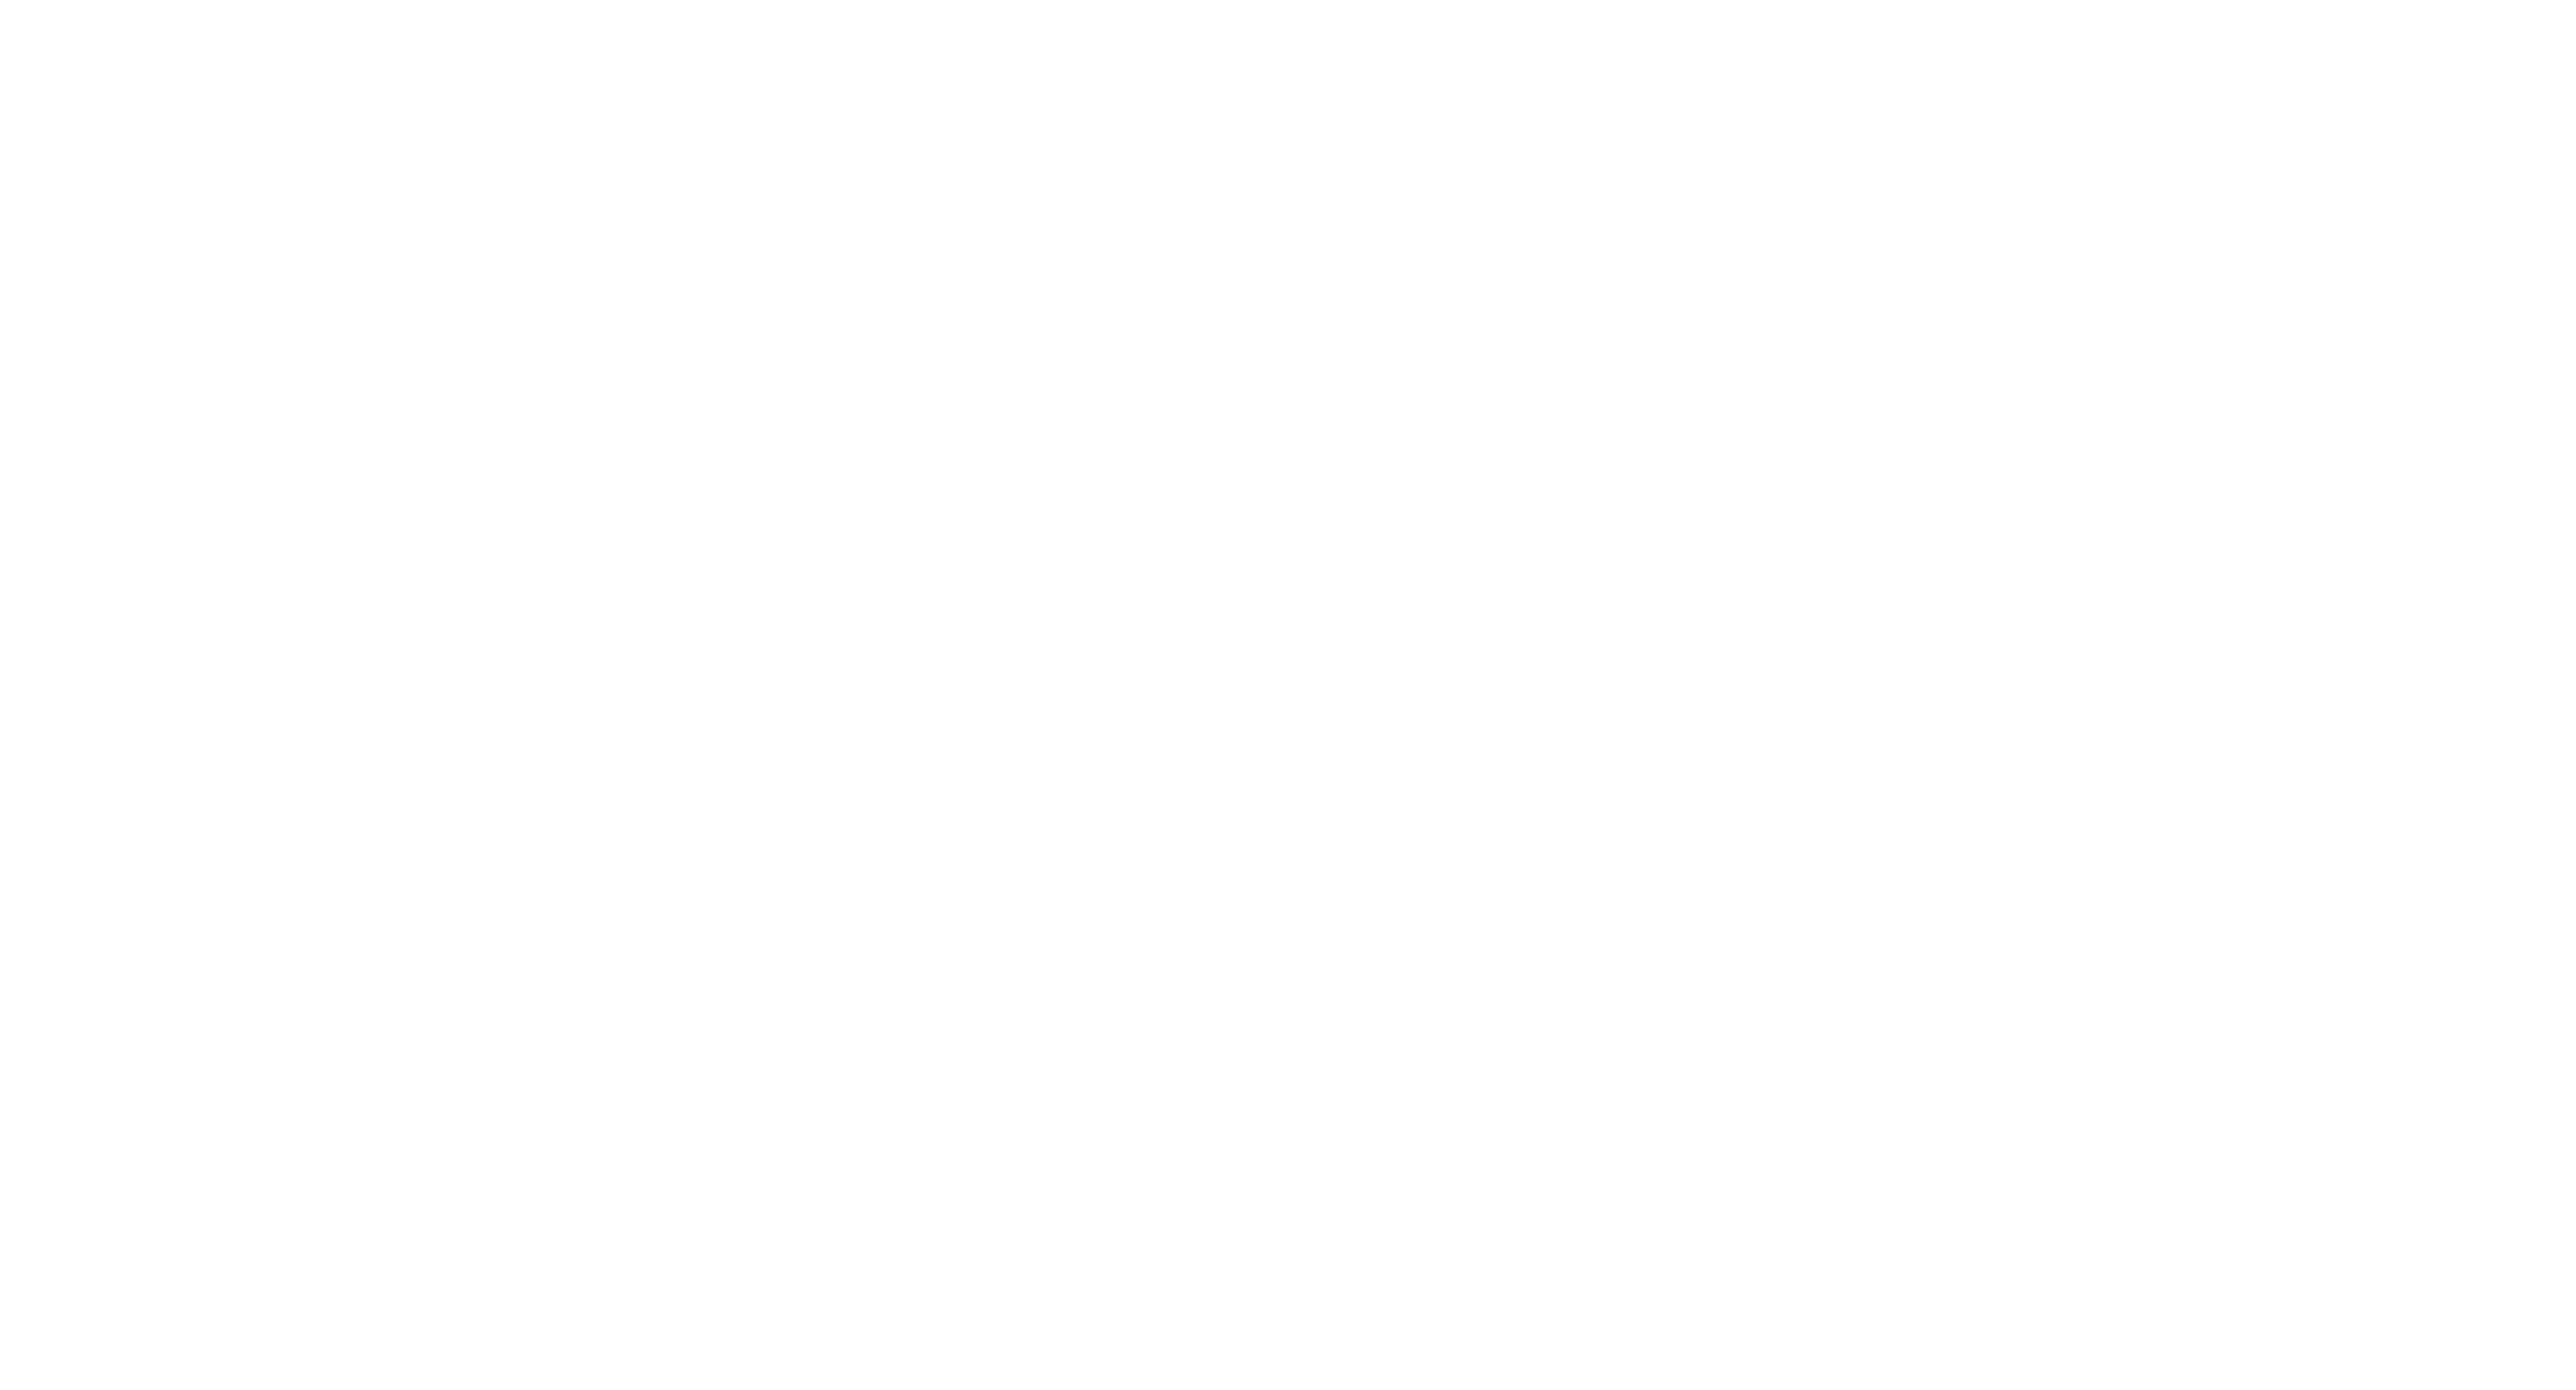 Bath and North East Somerset Liberal Democrats